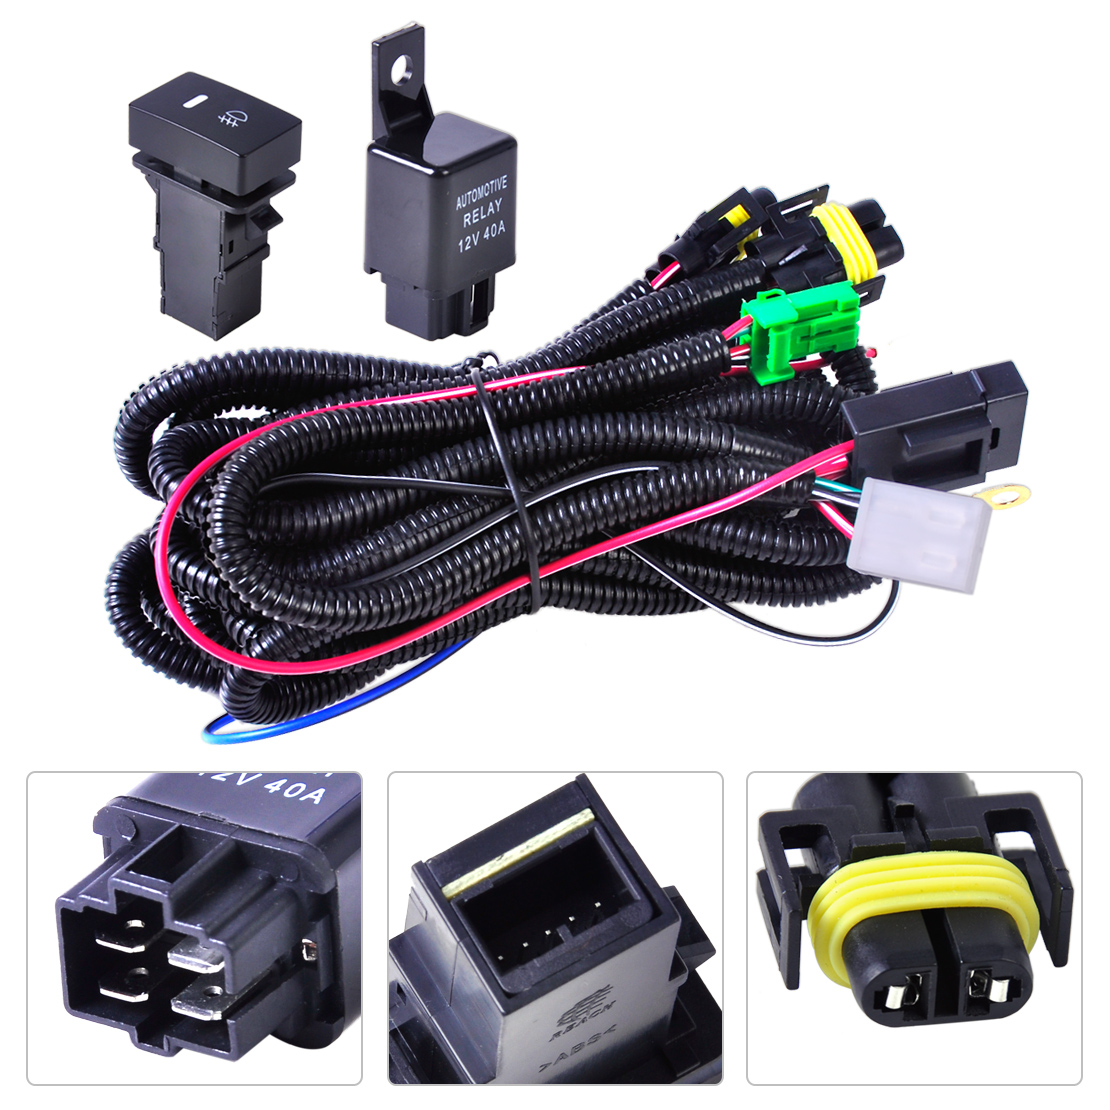 beler wiring harness sockets wire and switch fog light lamp for ford focus acura tsx nissan [ 1110 x 1110 Pixel ]